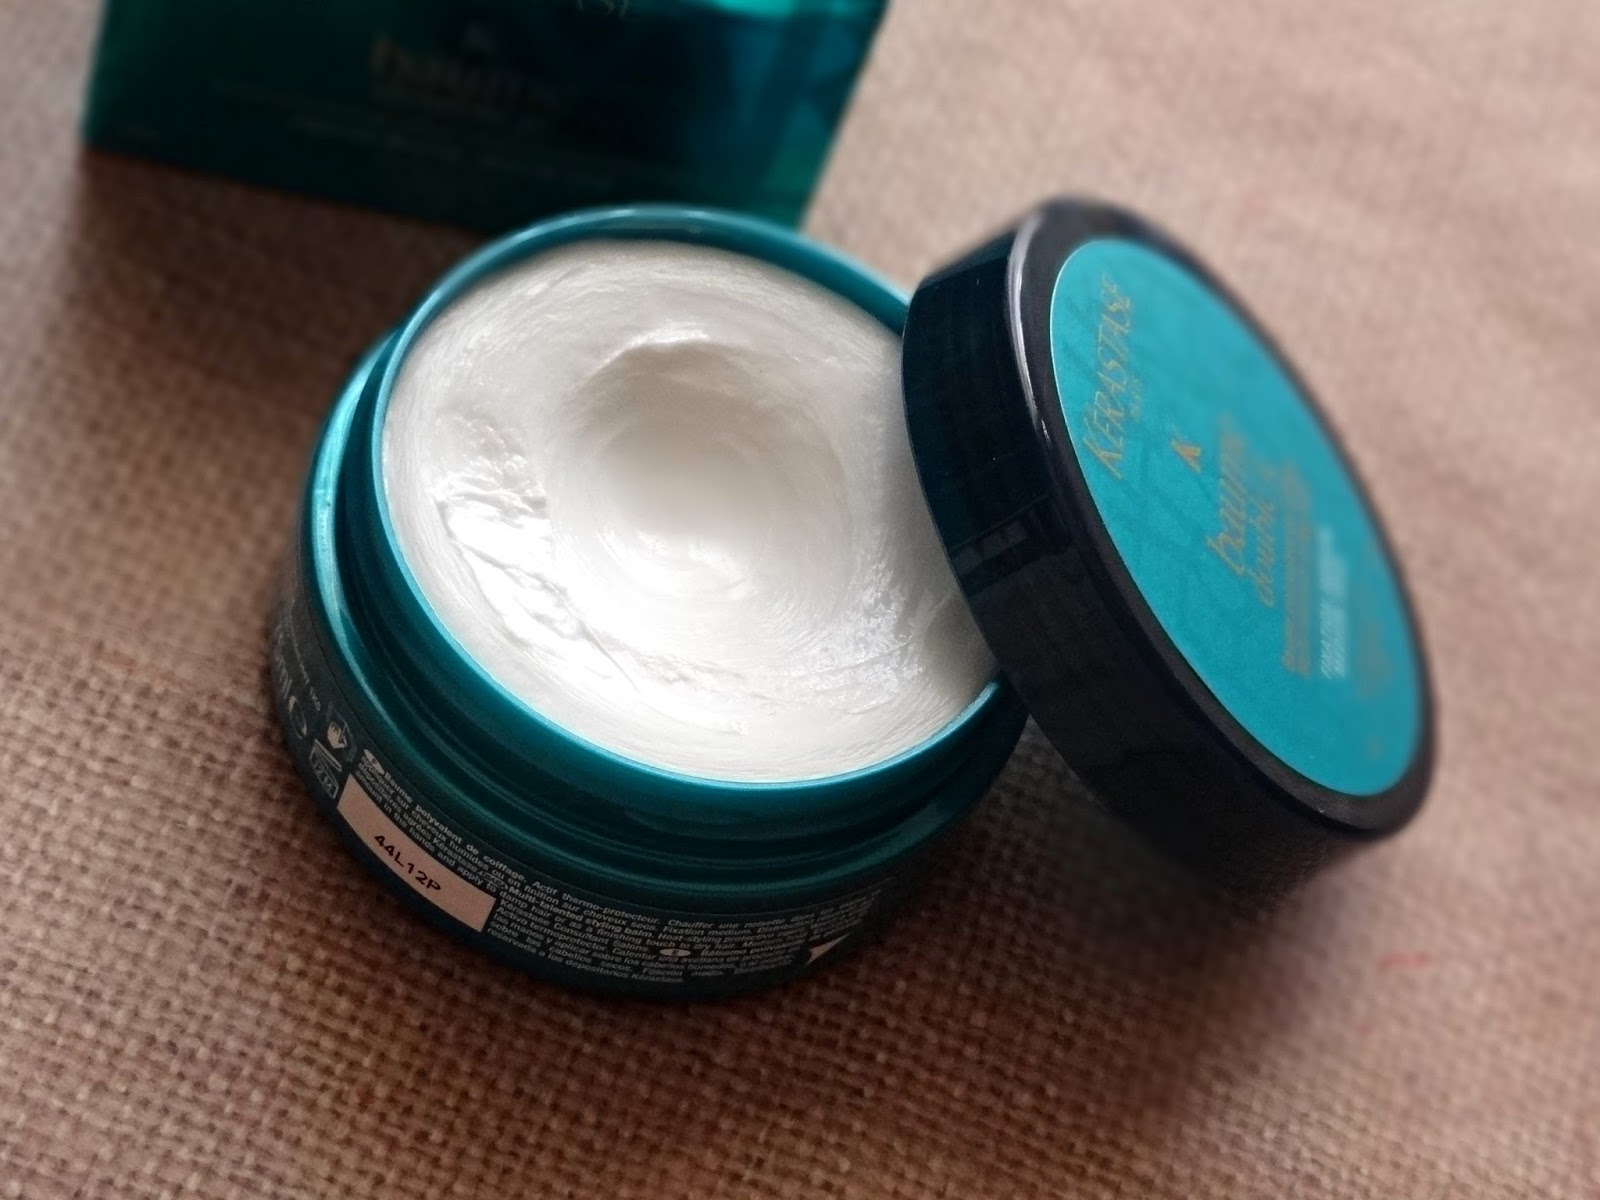 Kerastase Baume Double Je Review, Photos